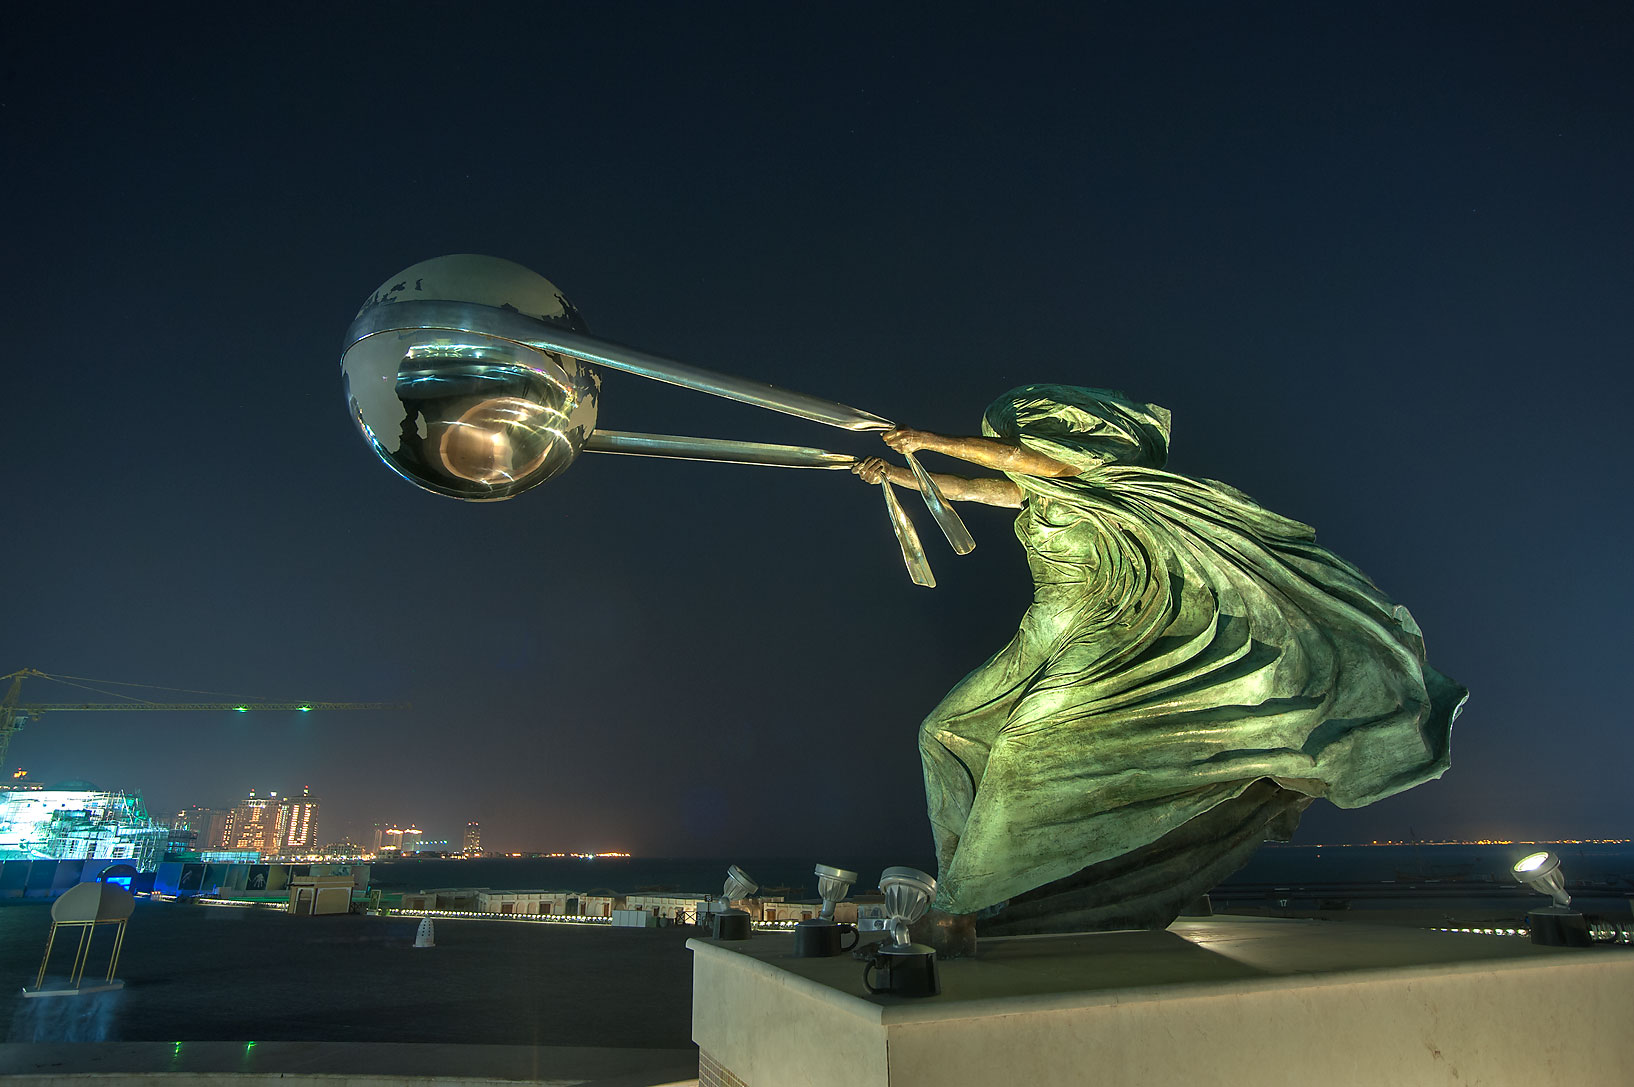 Harnessing the World sculpture in Katara Cultural...Amphitheater at evening. Doha, Qatar